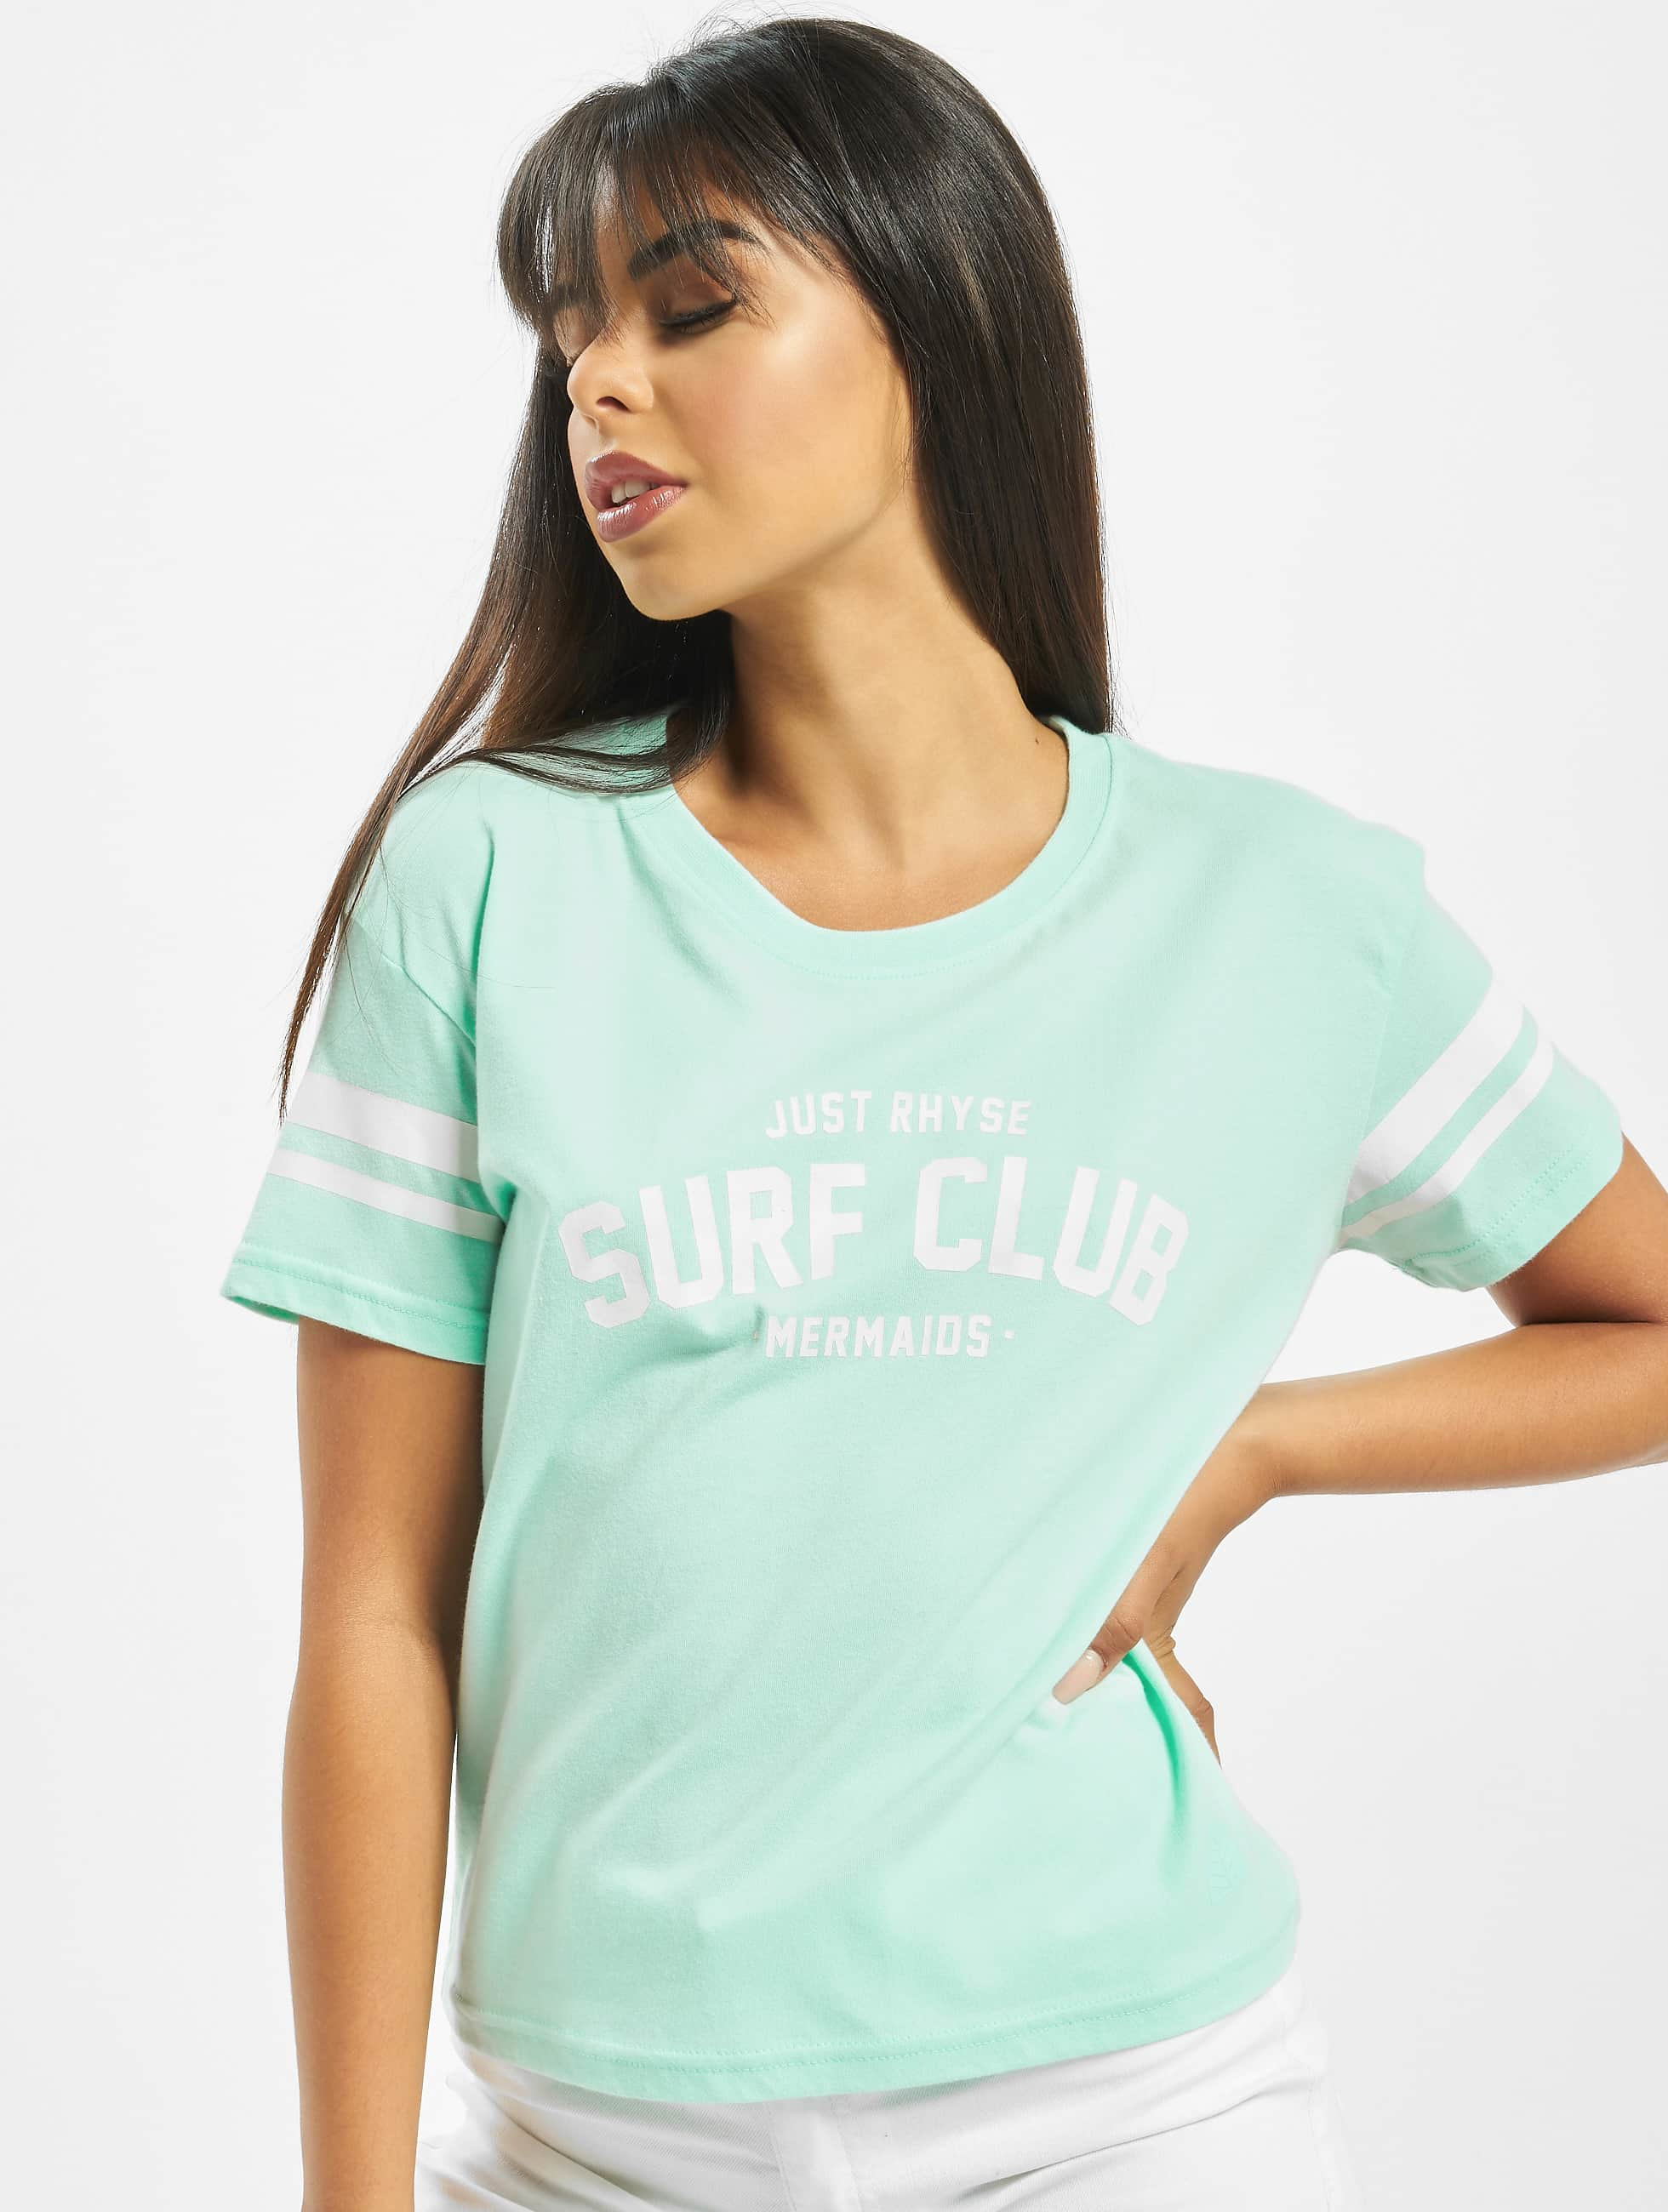 Just Rhyse / T-Shirt Santa Ana in turquoise XS